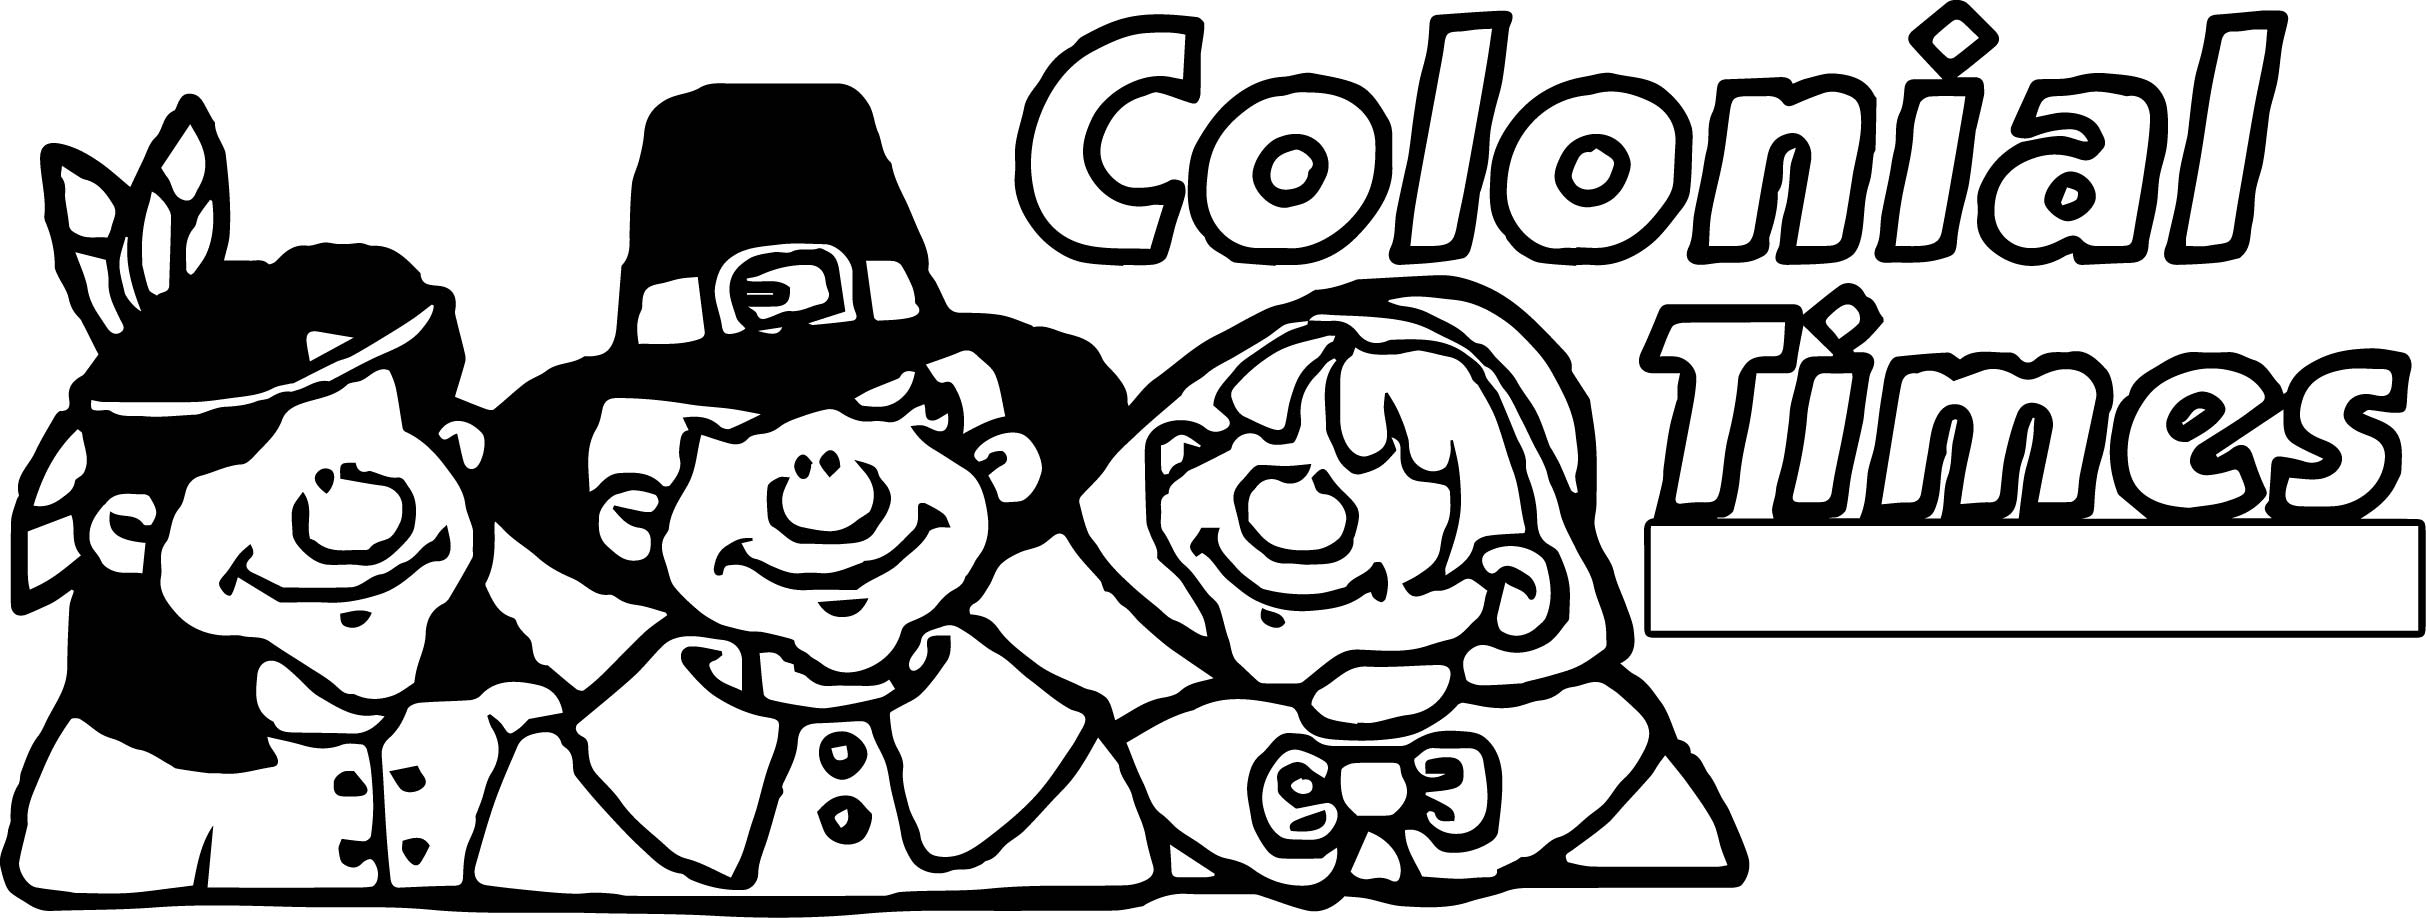 Colonial America Coloring Pages Sketch Coloring Page